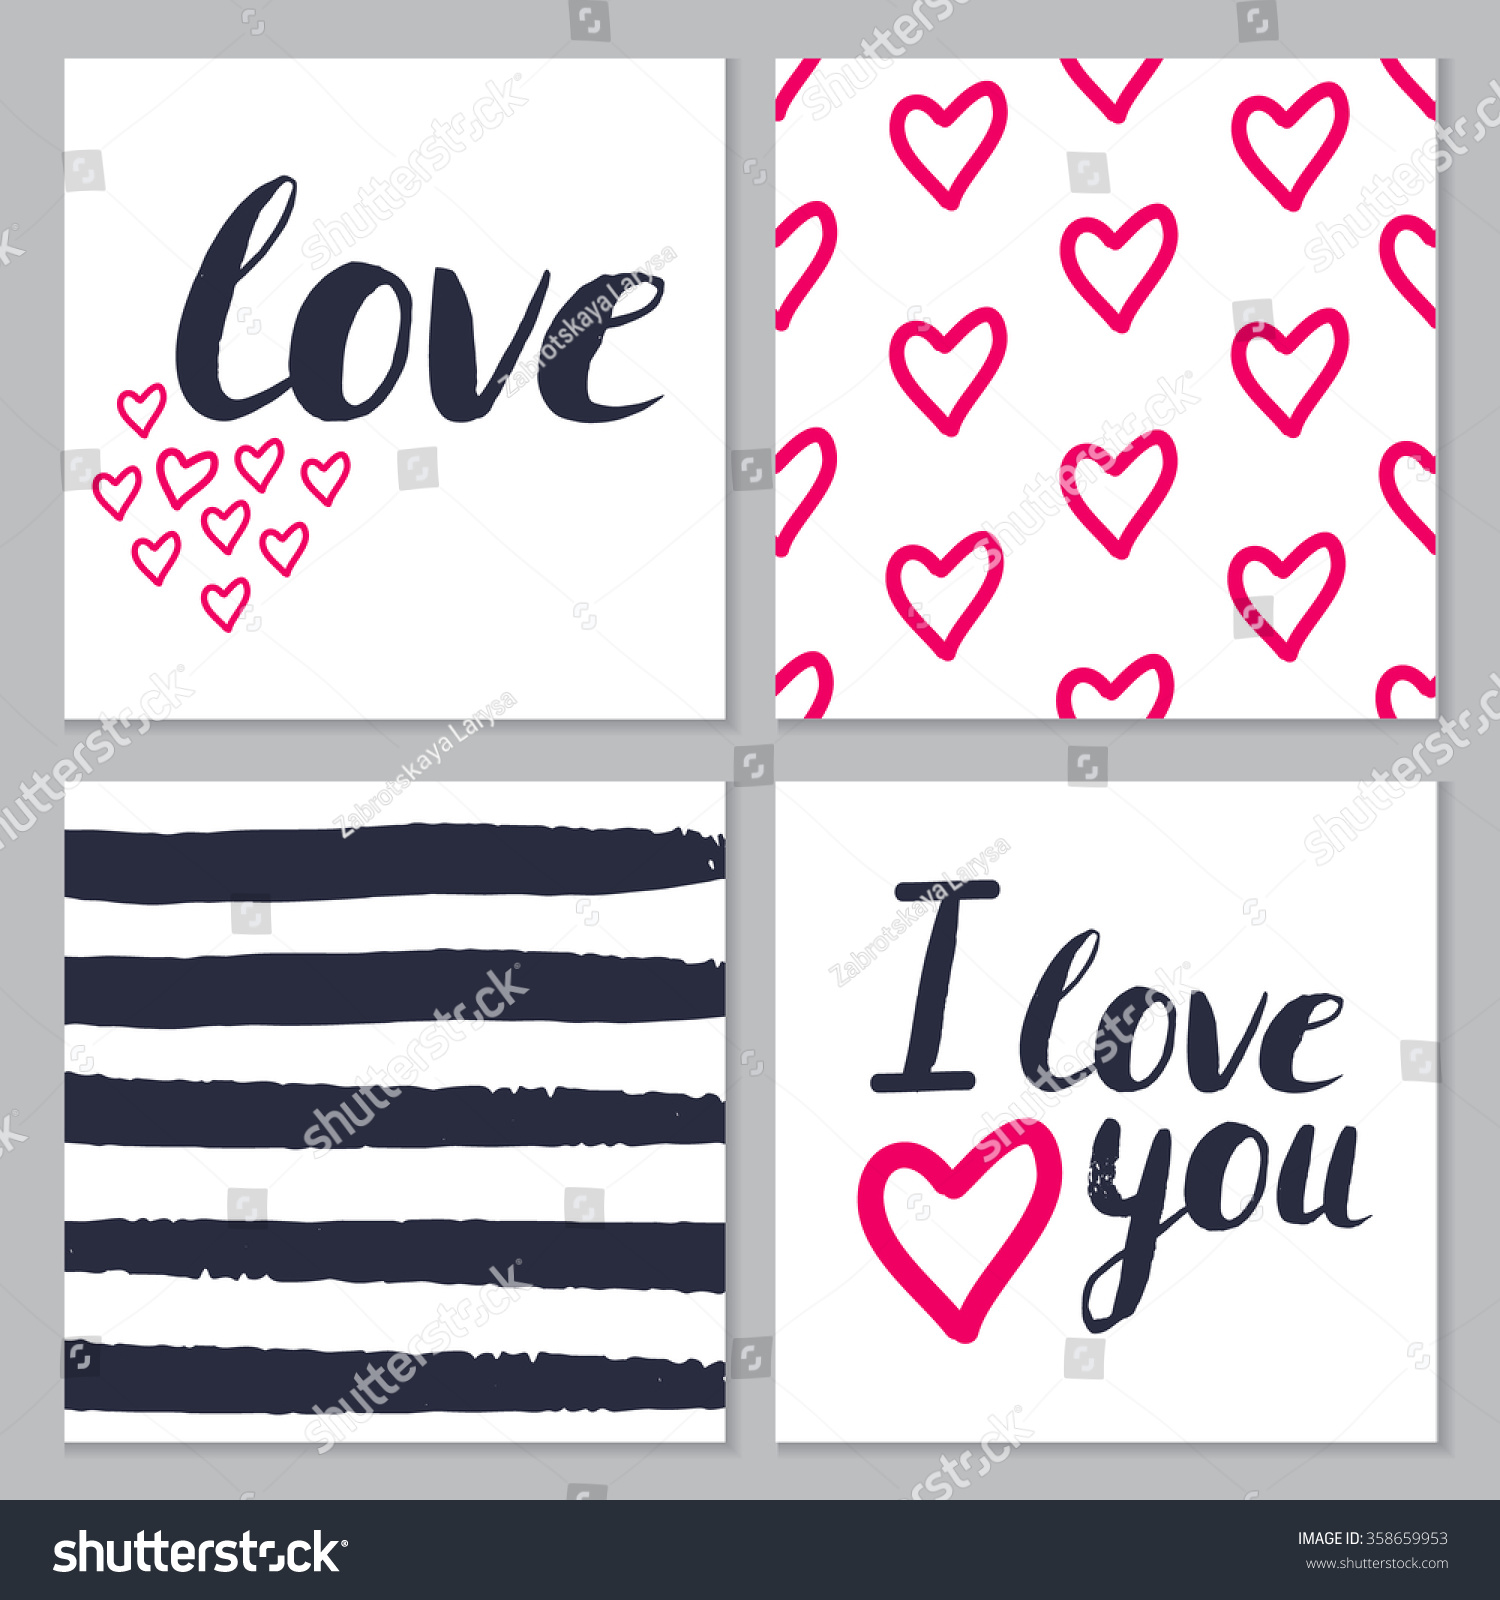 set of love cards with hand brush lettering and hearts in dark blue and pink colors